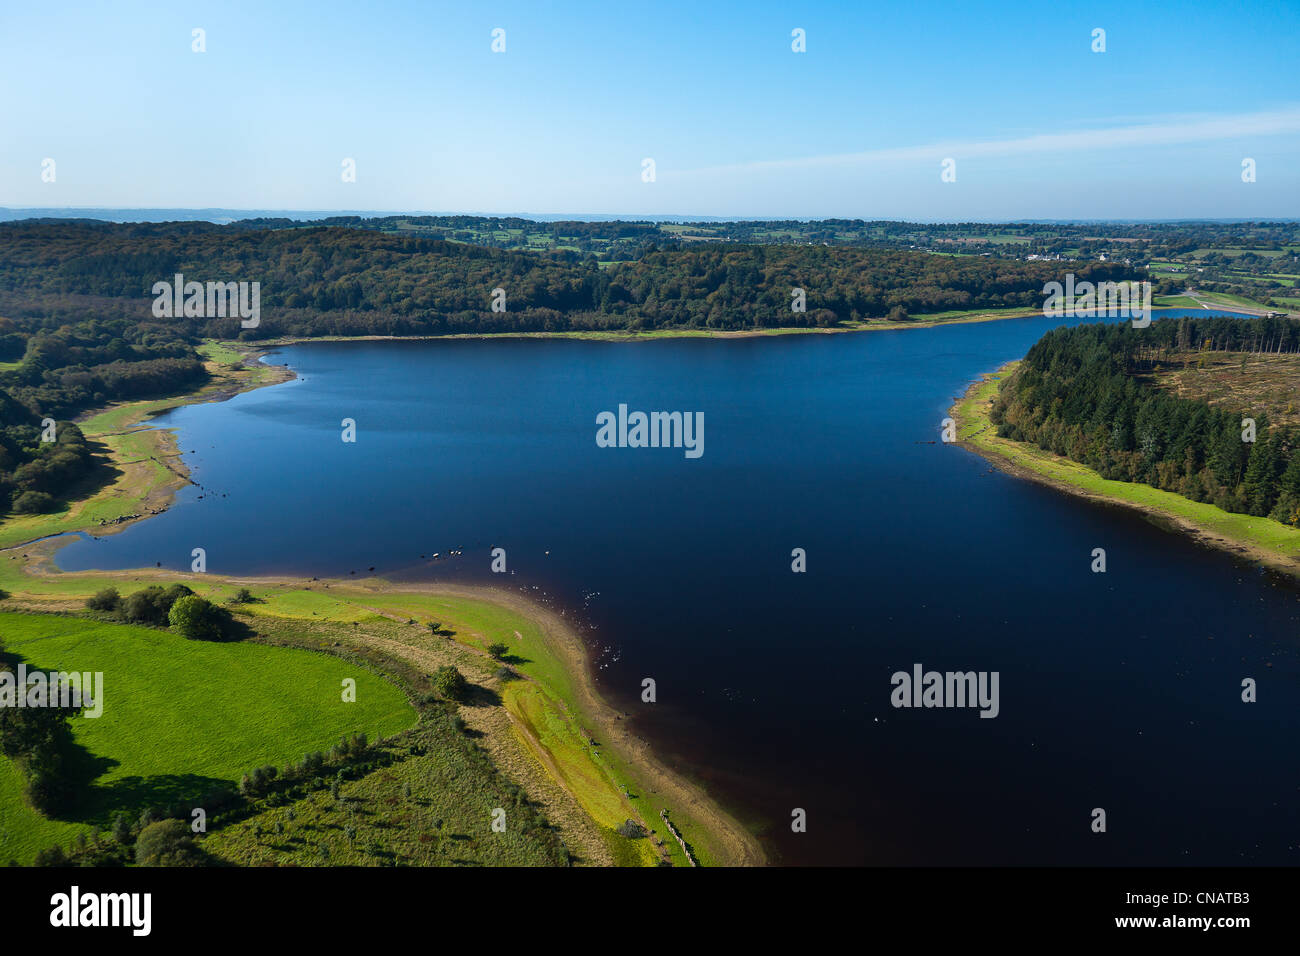 France, Manche, Le Gast, Gast lake (aerial view) - Stock Image